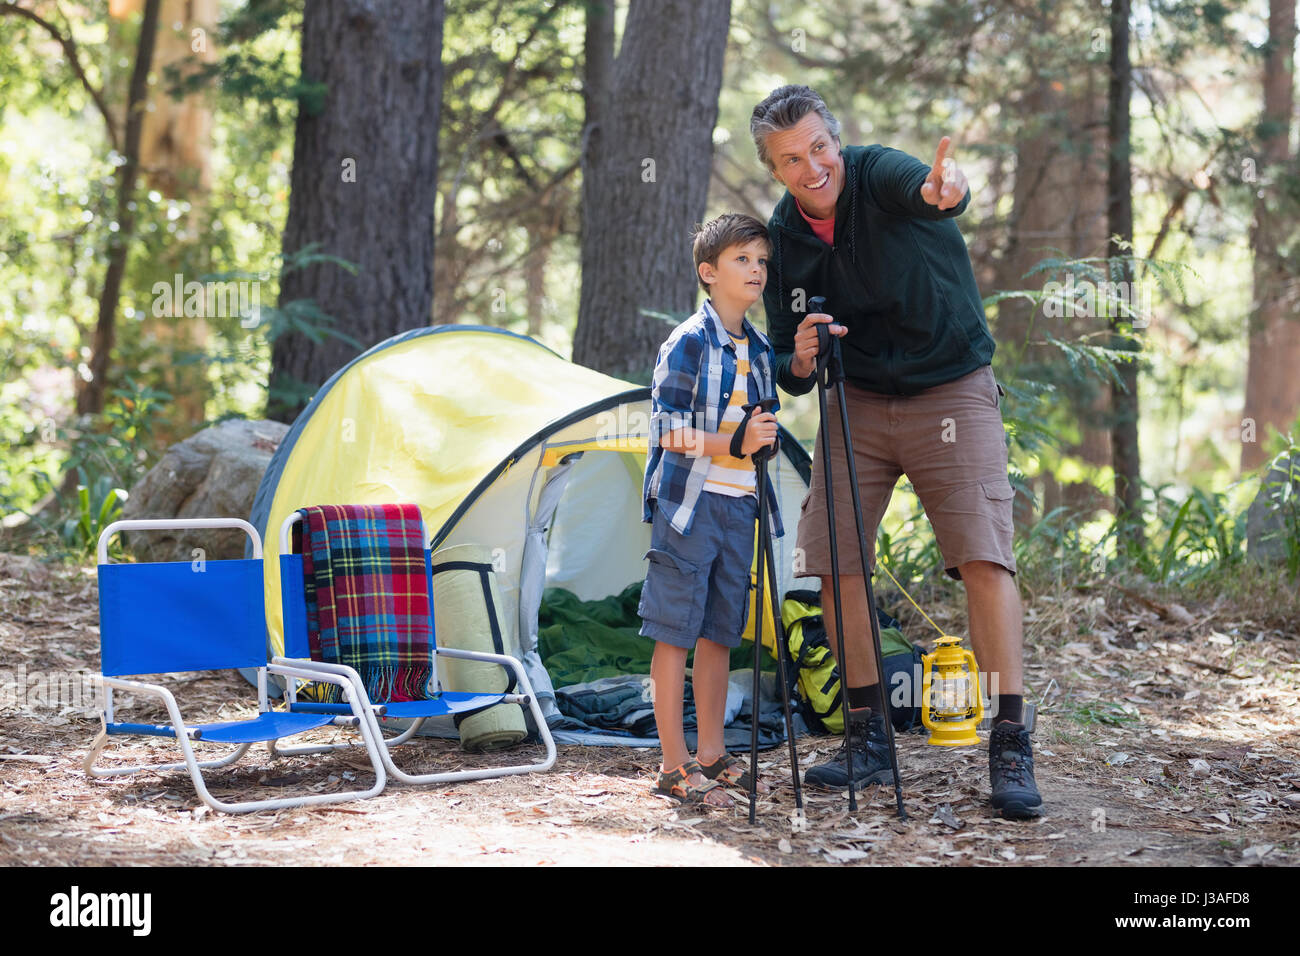 Father showing something to son while hiking in forest - Stock Image